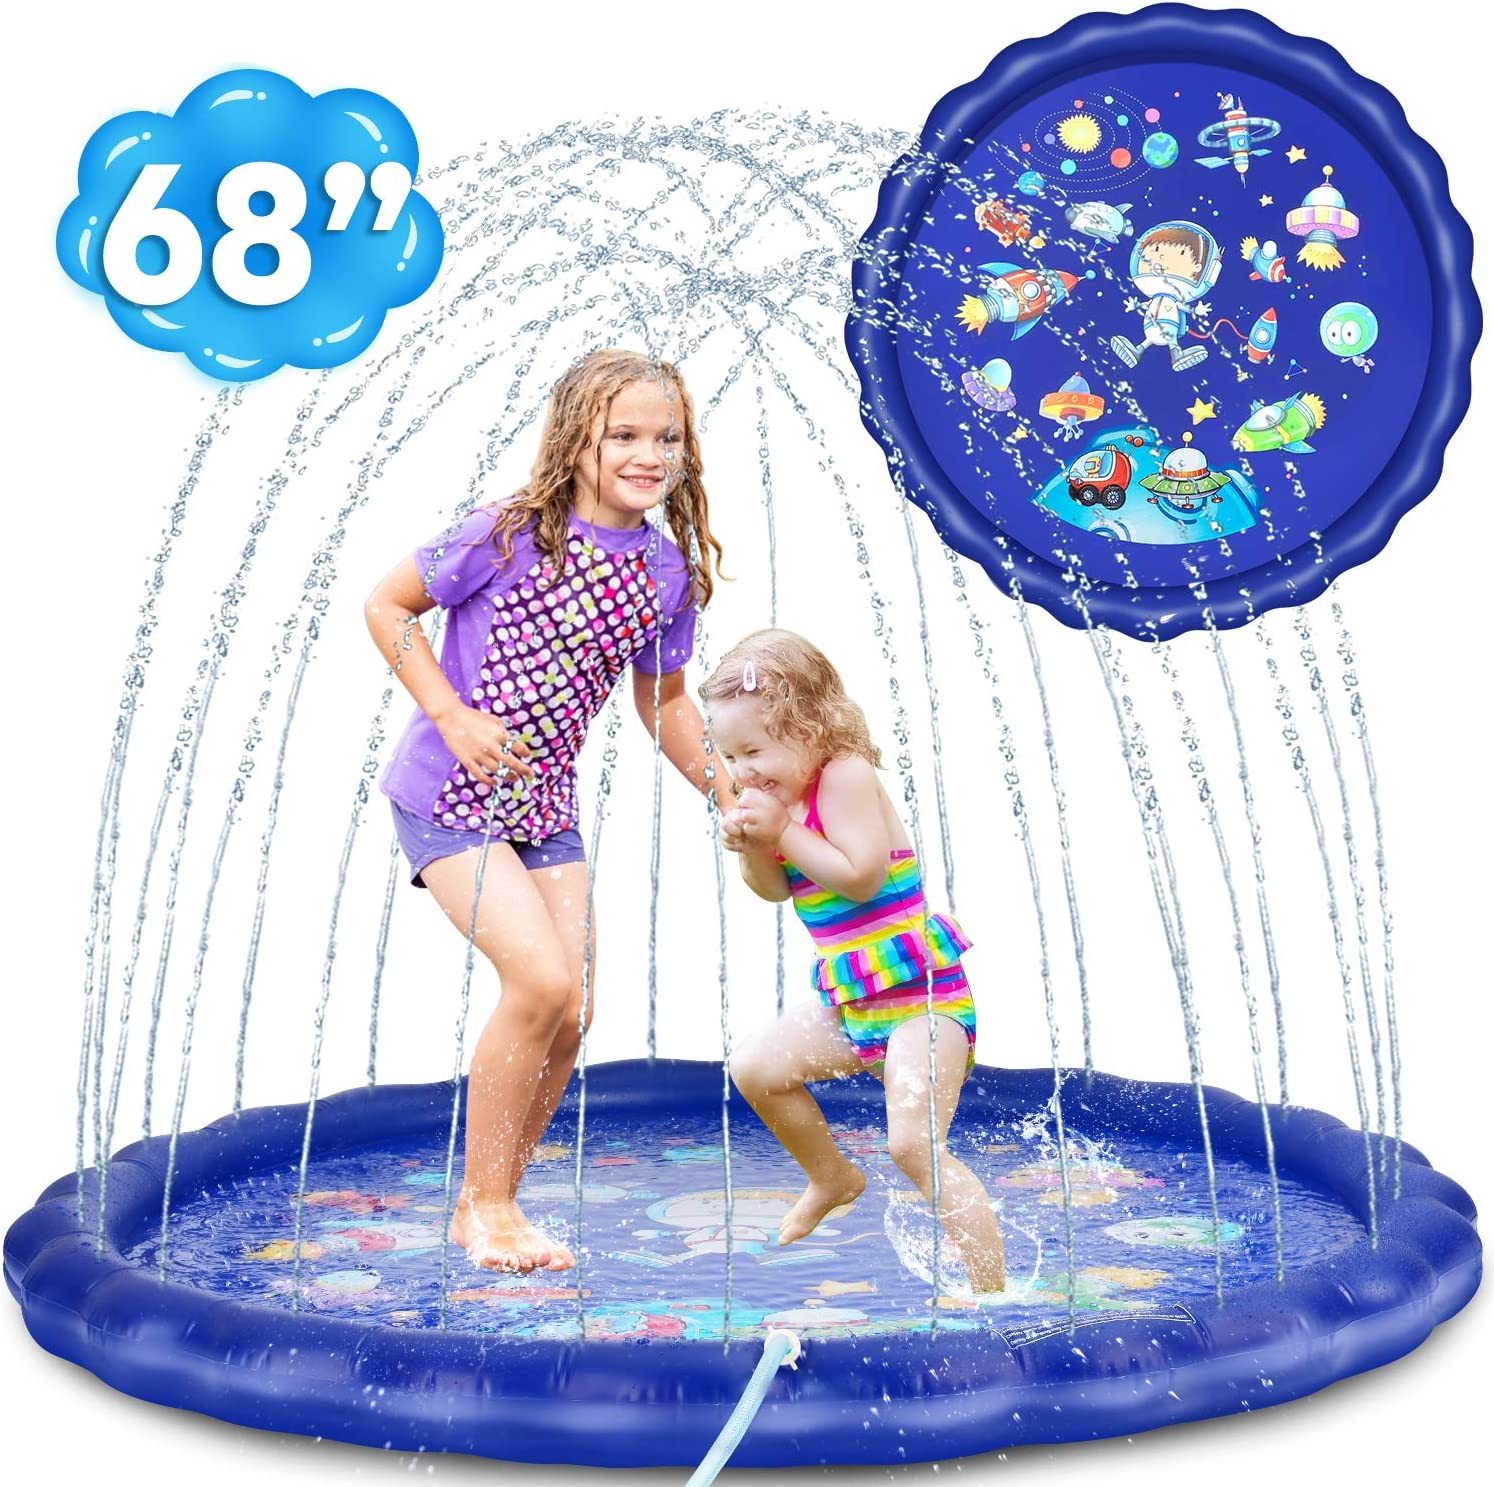 Mixsuper Sprinkler Pad Splash Inflatable Mat Play Mat 59 Baby Wading Pool Sprinkler Pool Summer Outdoor Water Toys for Children Boys Girls 3 4 5 6 Years Old